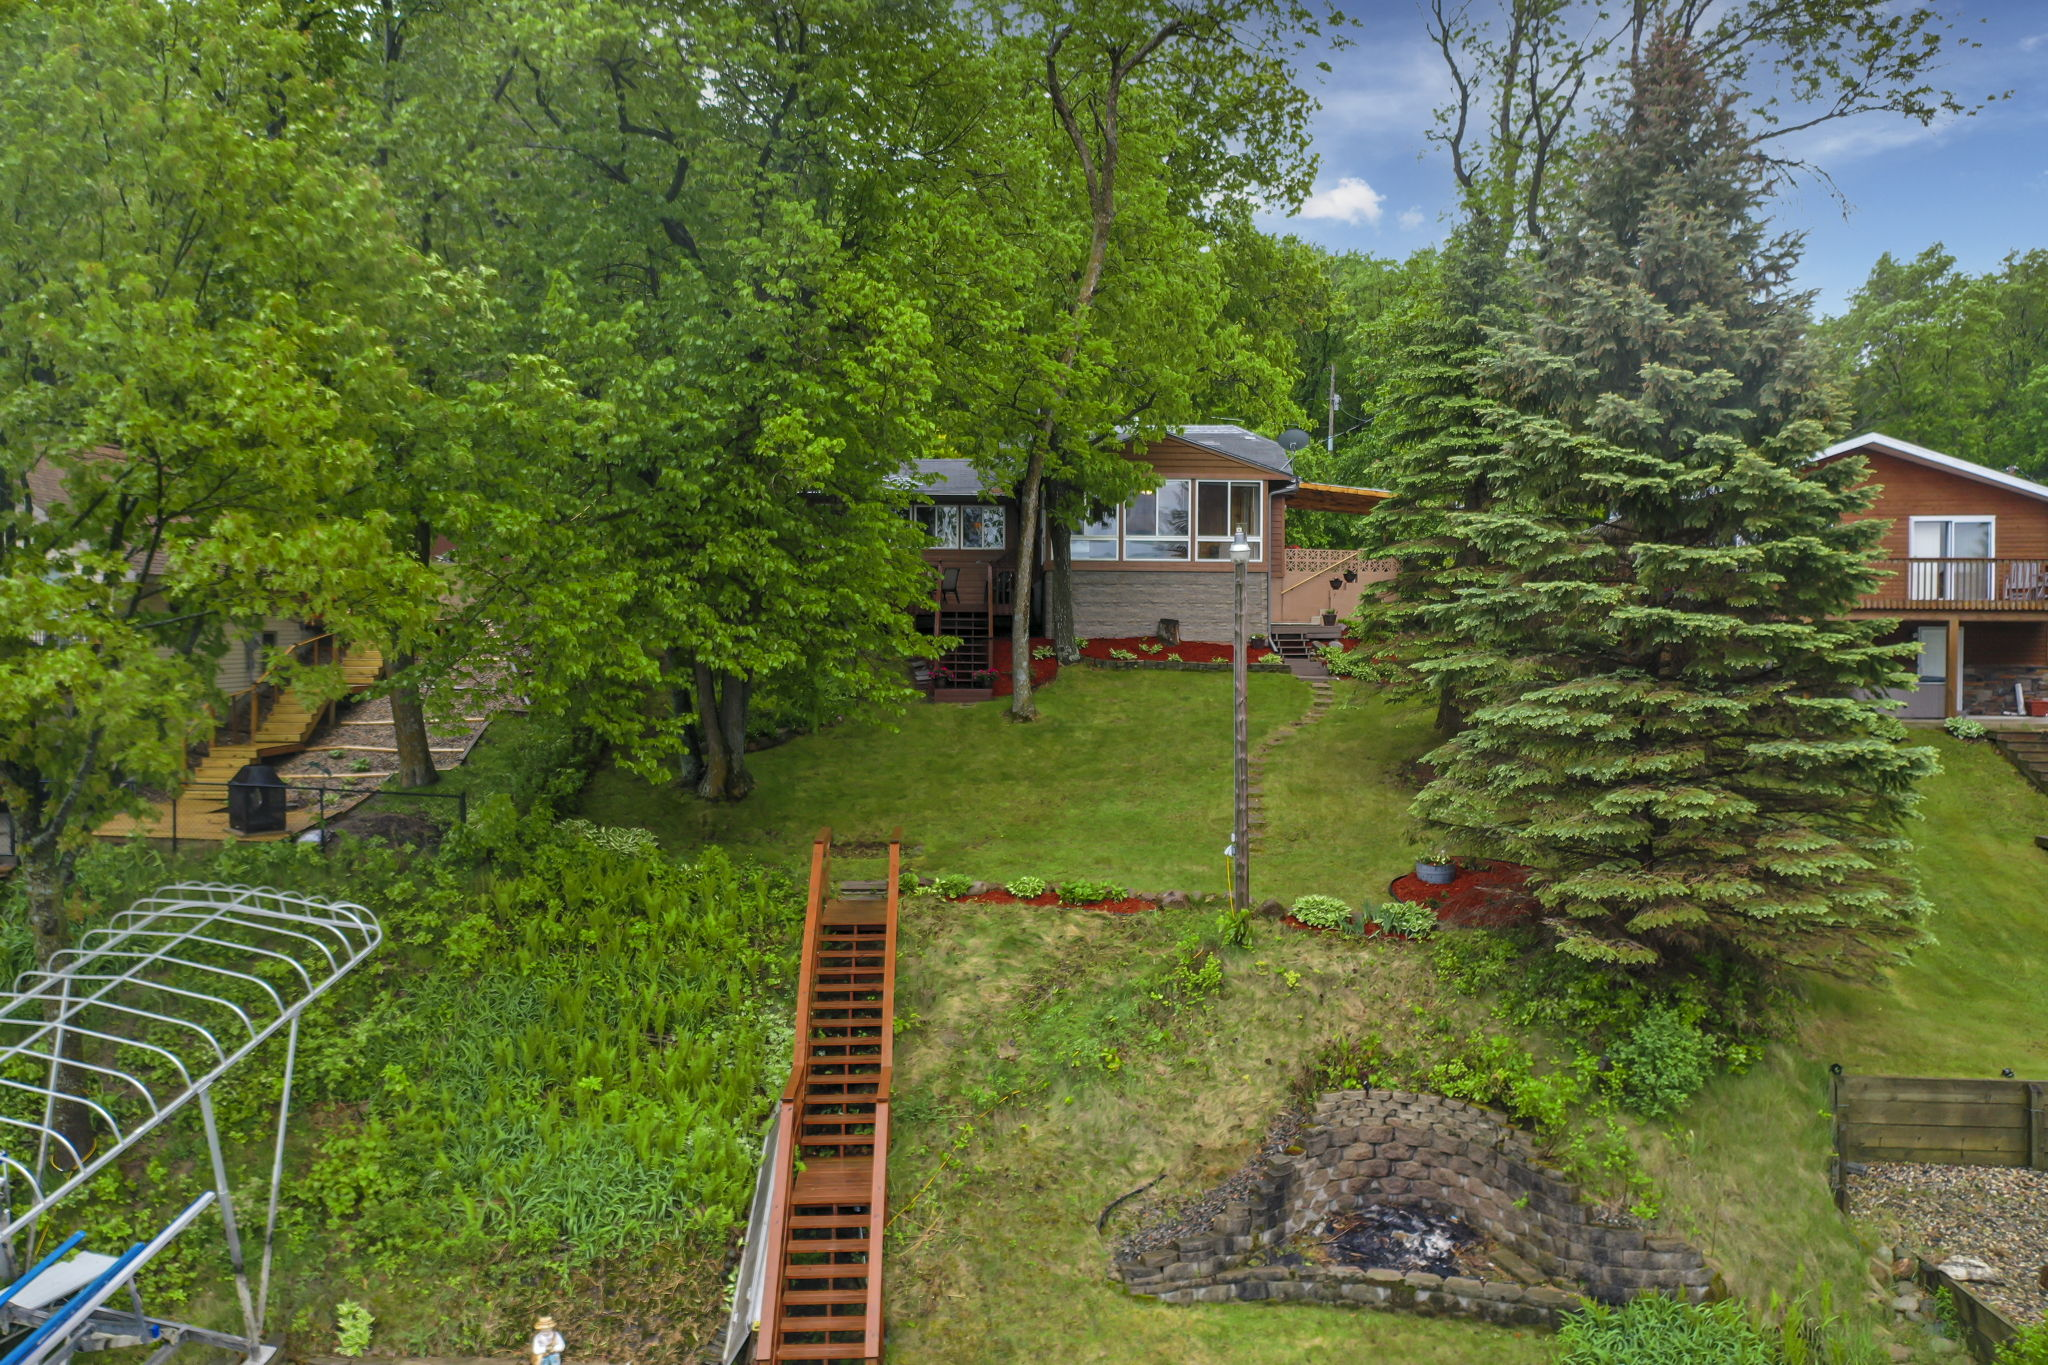 30522 Brentwood Rd, Paynesville, MN 56362, US Photo 53